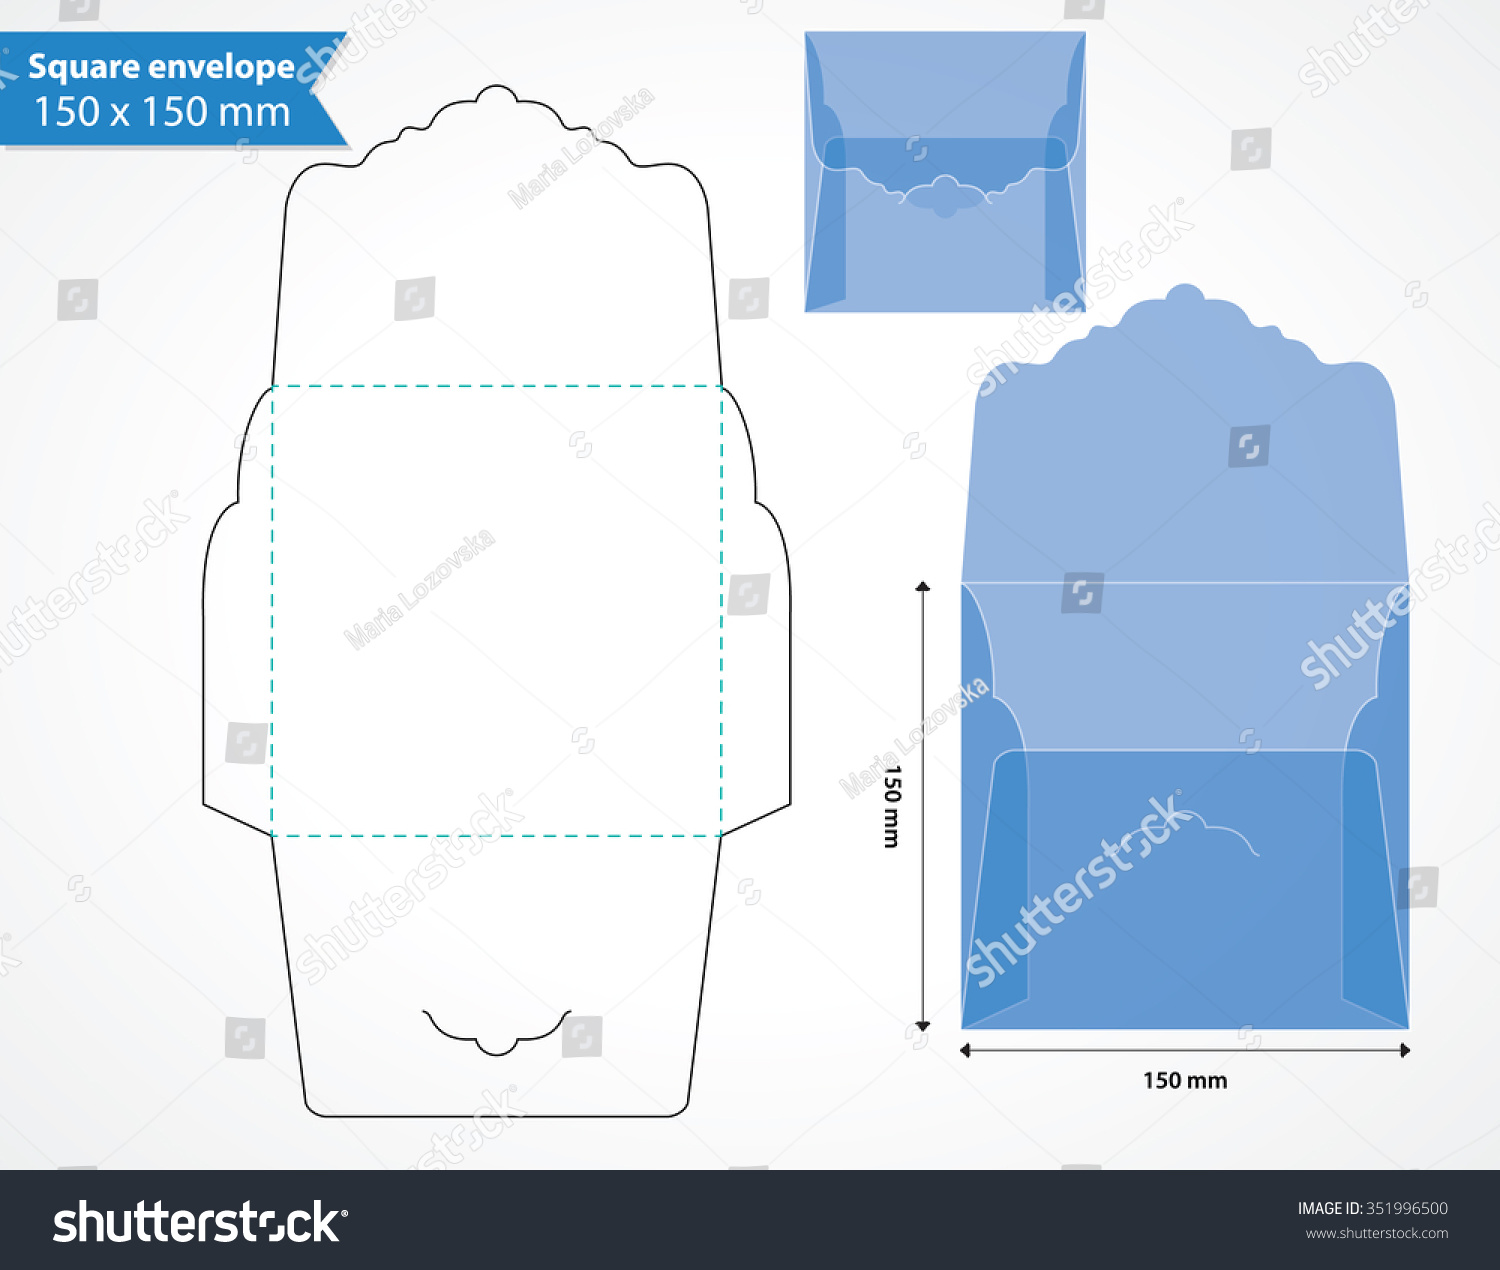 Square Envelope Layout Template Original Flap Stock Vector Royalty